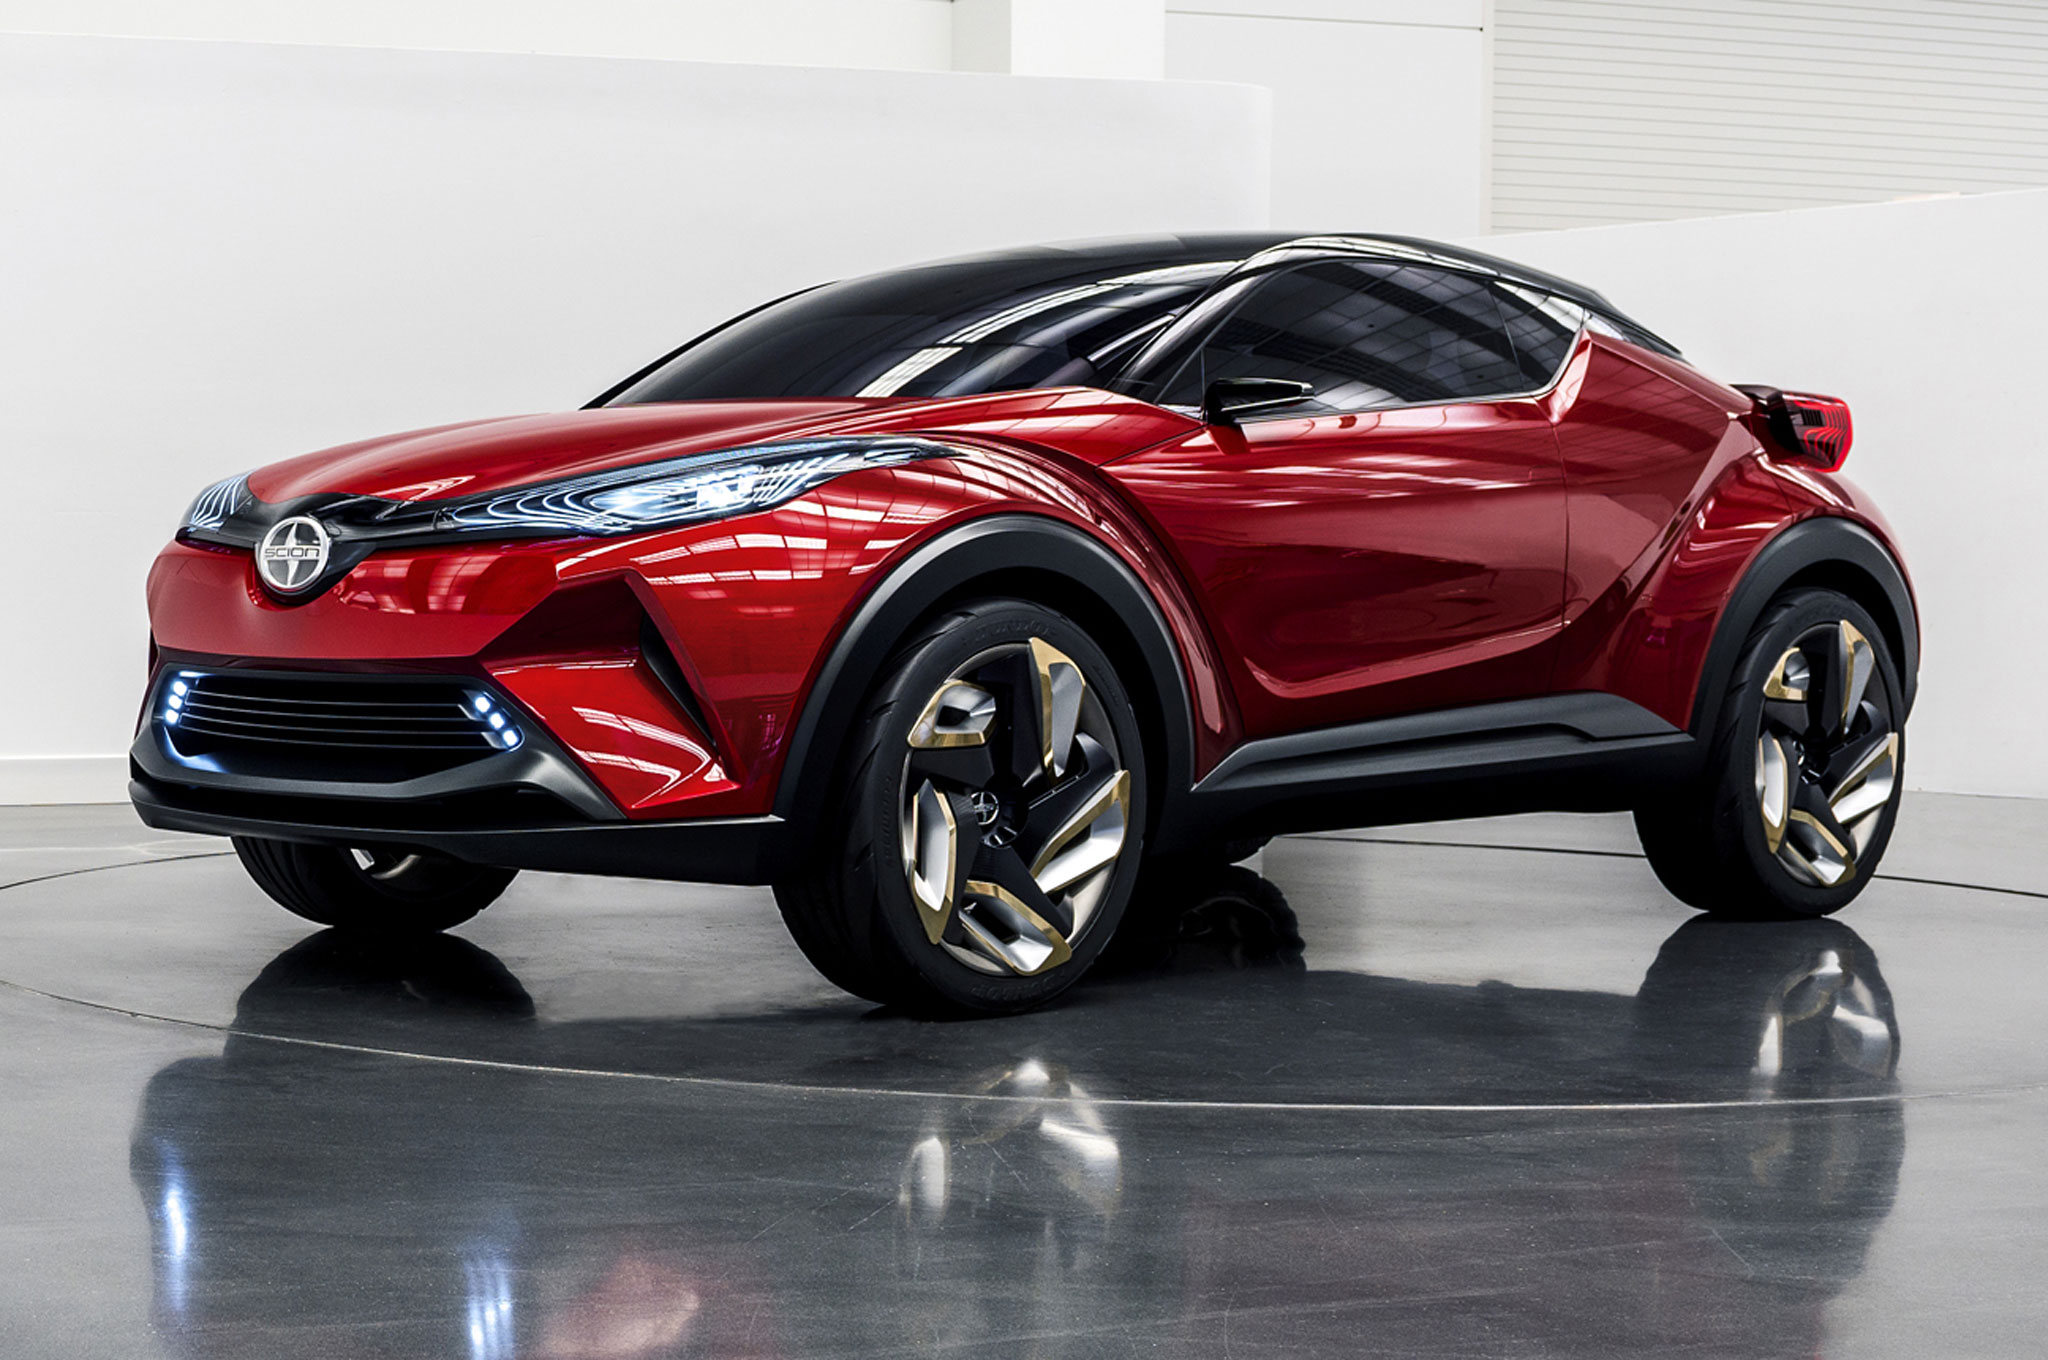 modified toyota c hr crossover heading to 24 hours of nurburgring. Black Bedroom Furniture Sets. Home Design Ideas